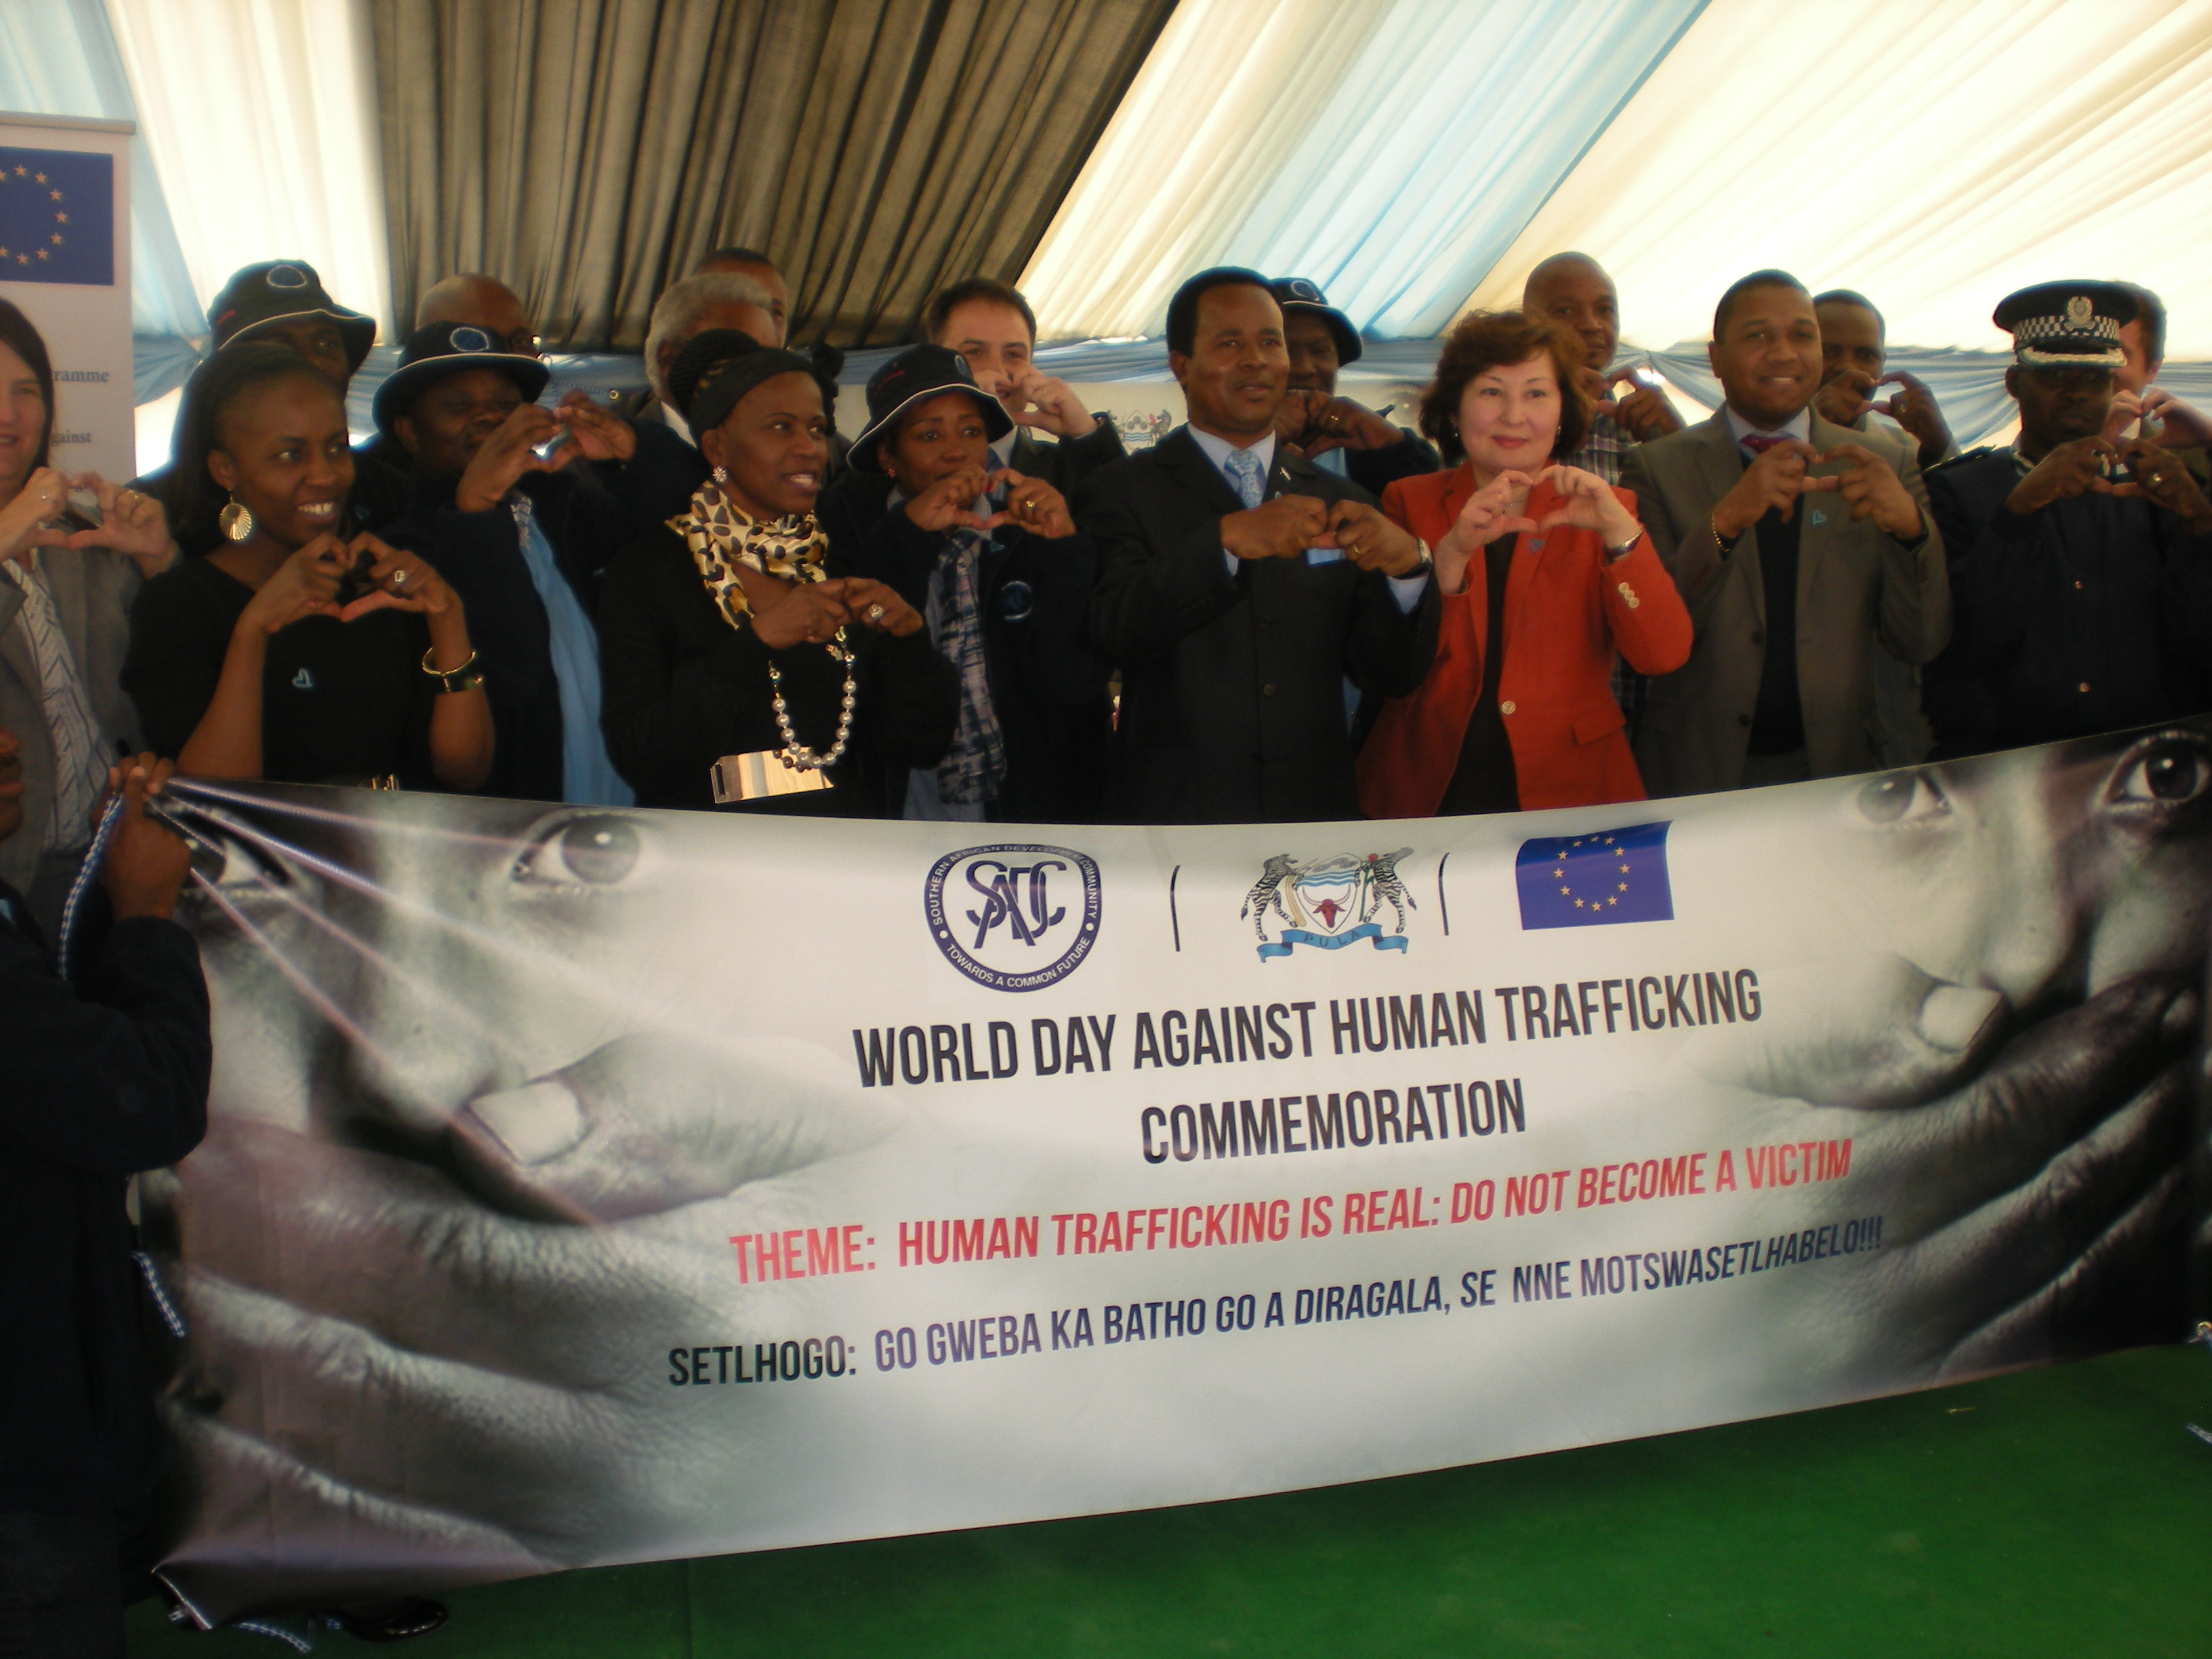 Commemoration of International Day Against Trafficking in Persons, Botswane (Picture: UNODC)